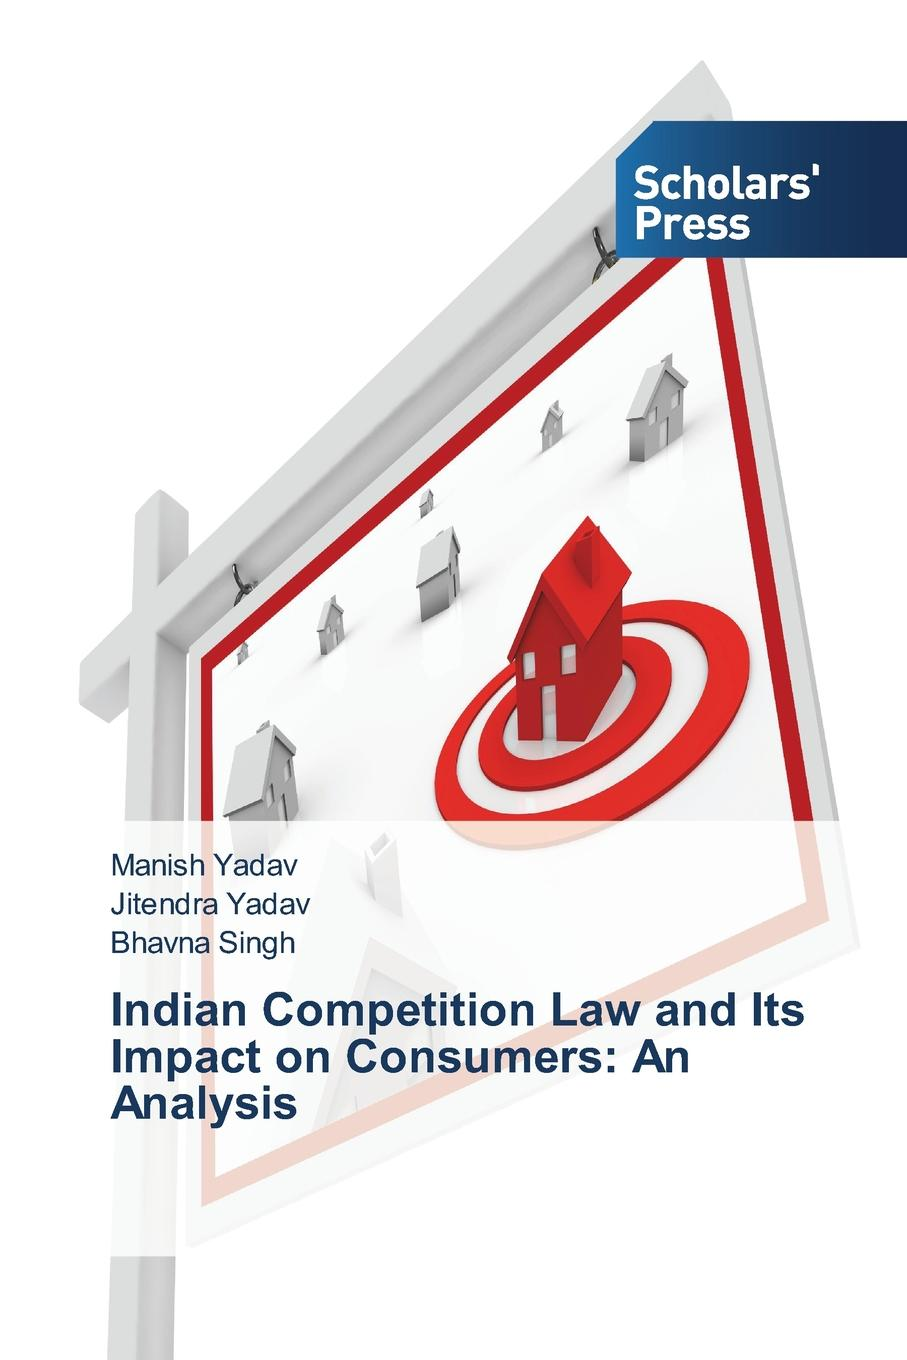 Yadav Manish, Yadav Jitendra, Singh Bhavna Indian Competition Law and Its Impact on Consumers. An Analysis claus dieter ehlermann mel marquis european competition law annual 2007